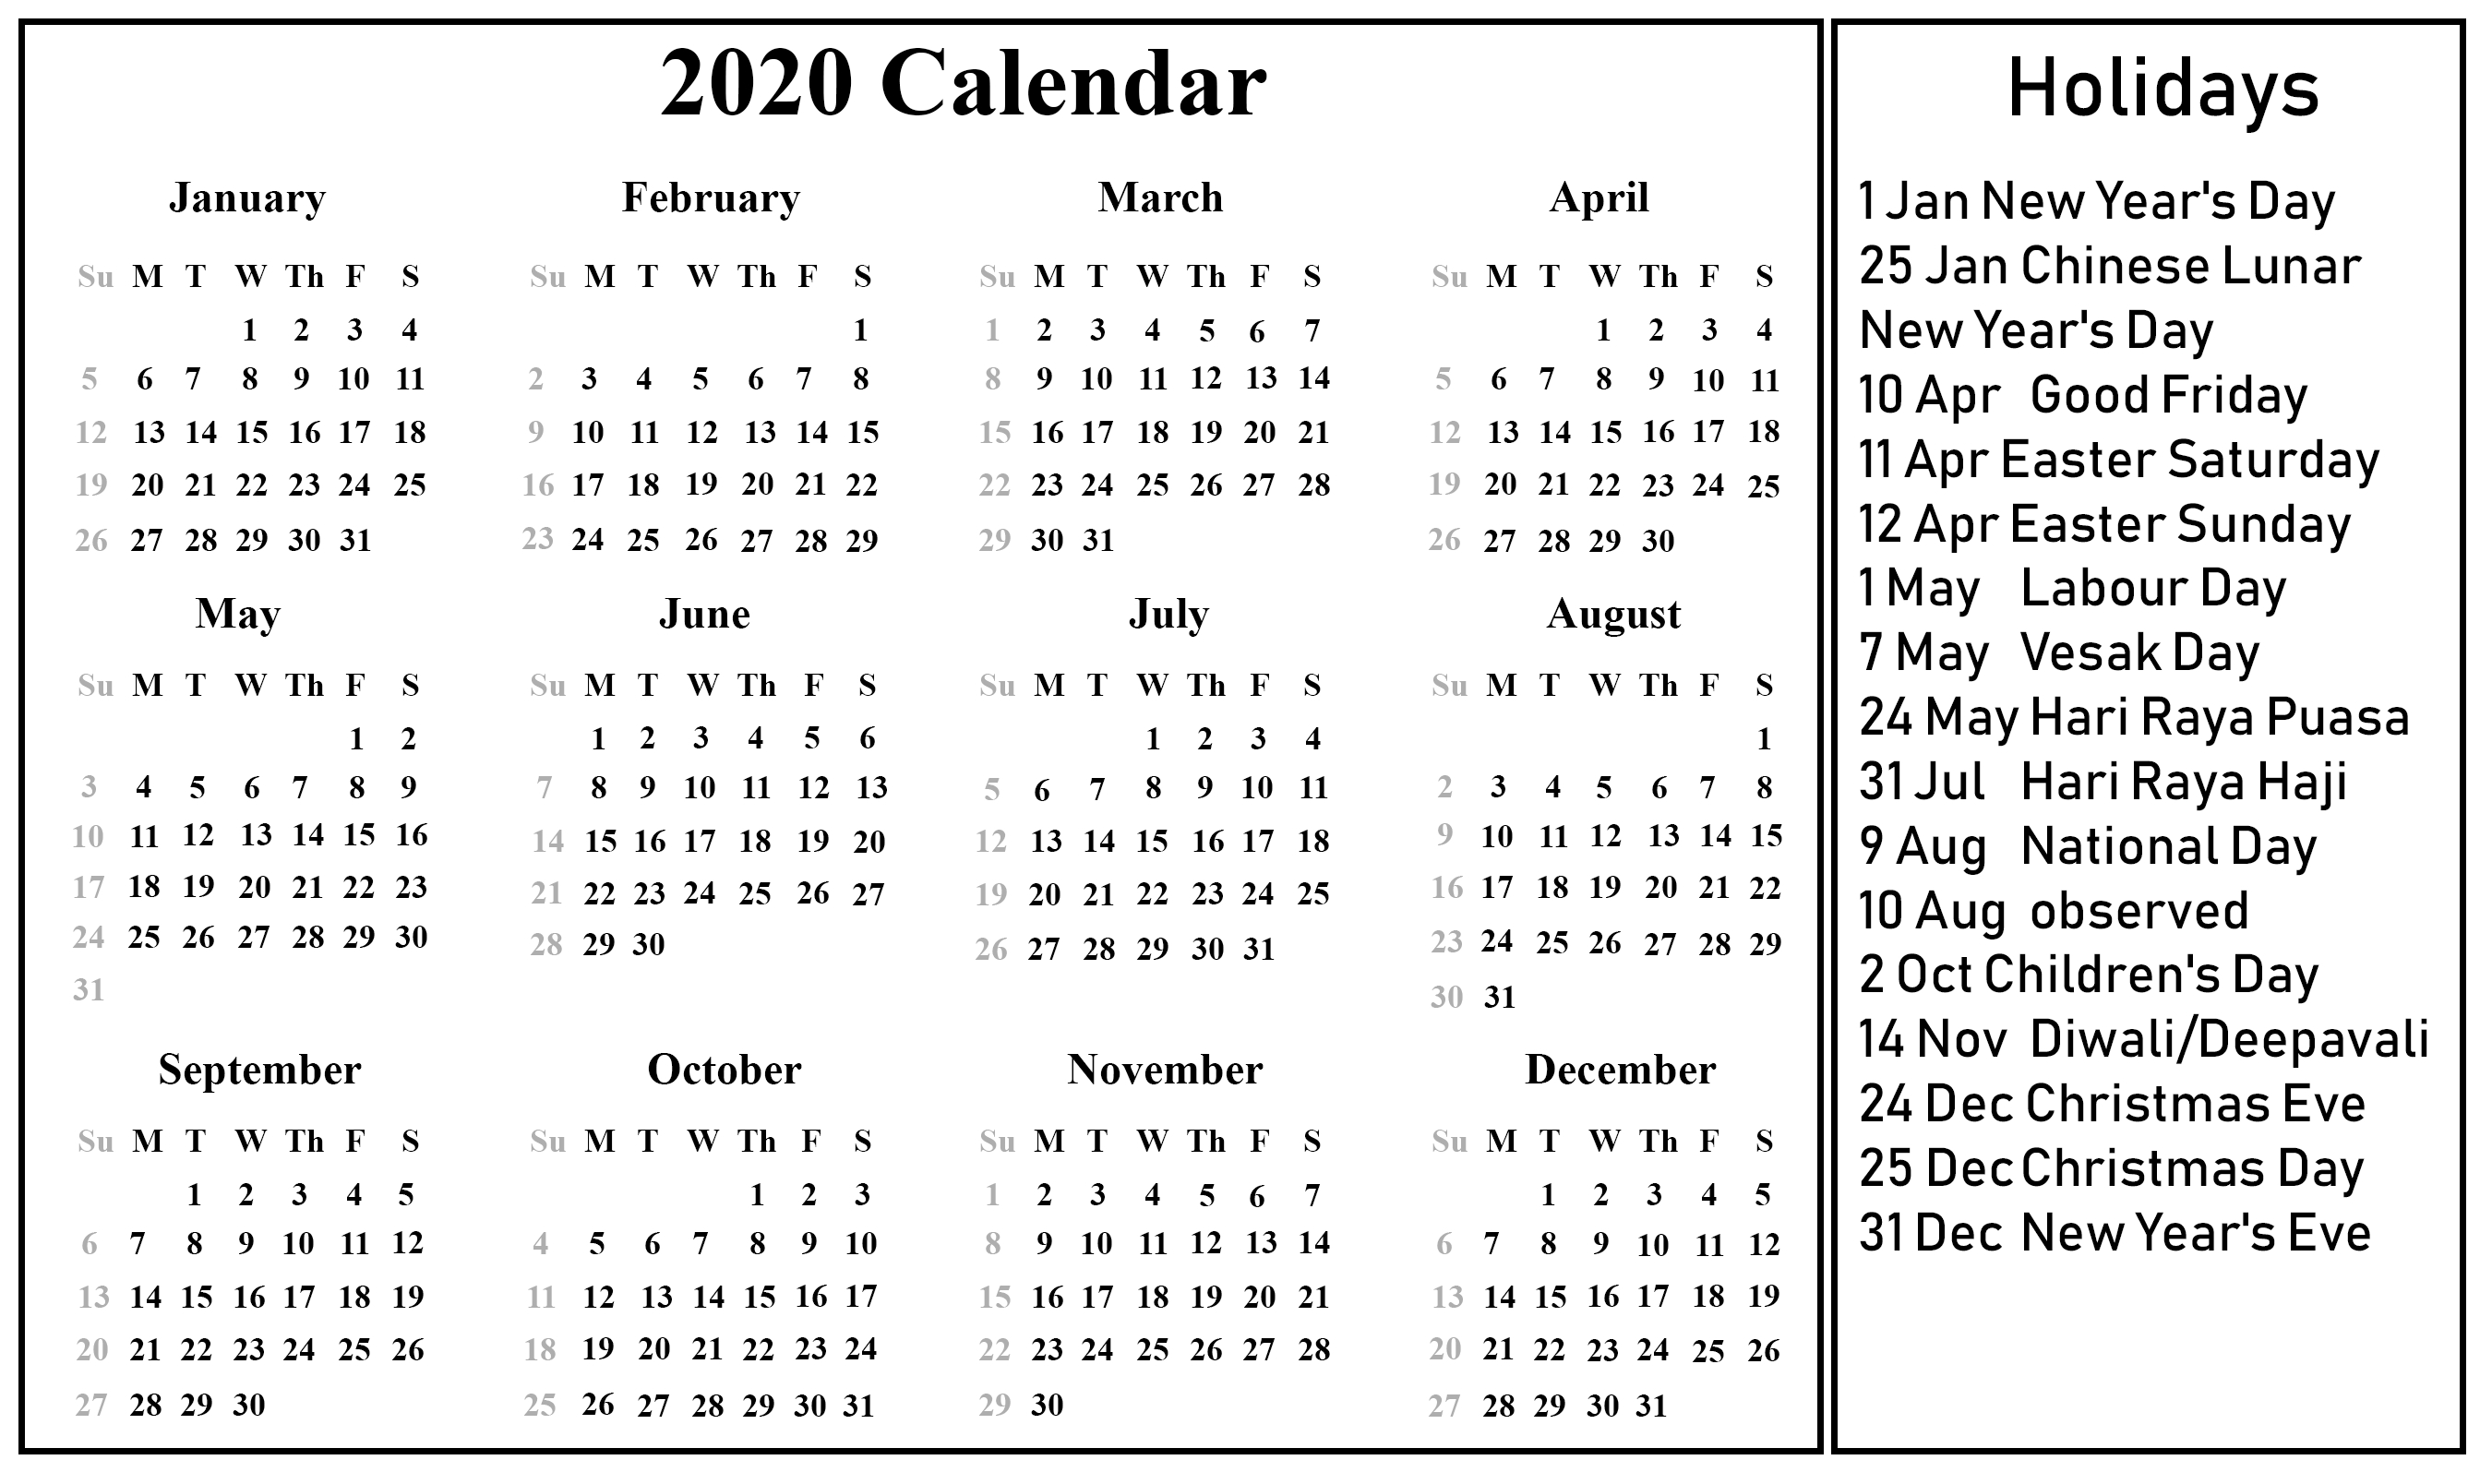 Singapore 2020 Printable Holidays Calendar | 2020 Calendars  Aug - Dec 2020 Calendar